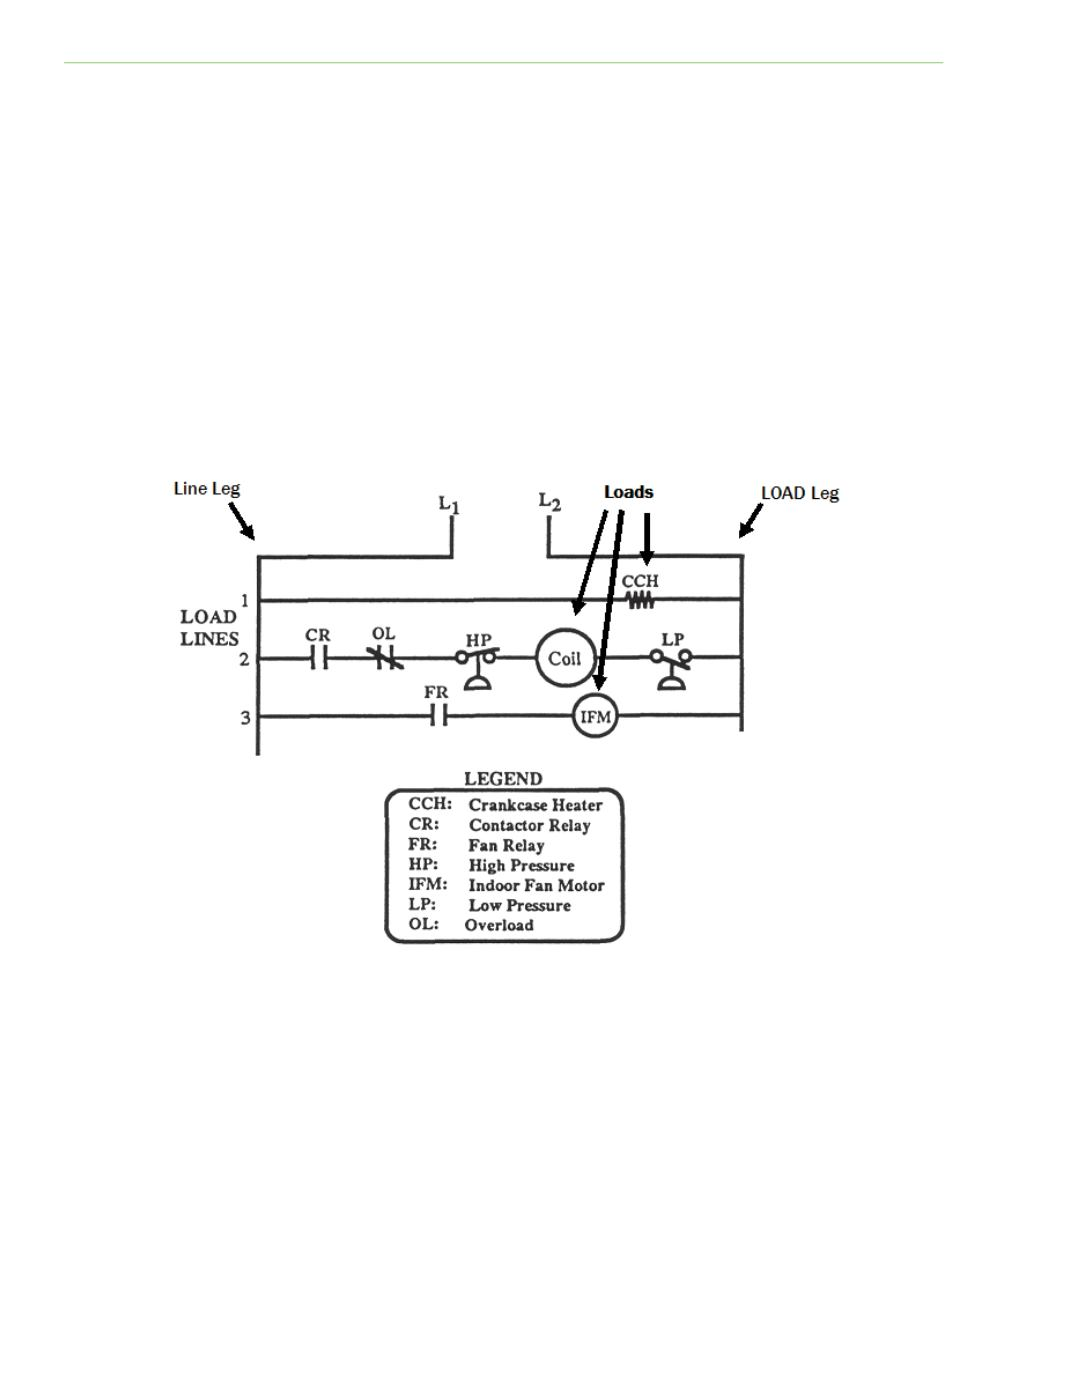 Electrical Theory an Application for HVACR